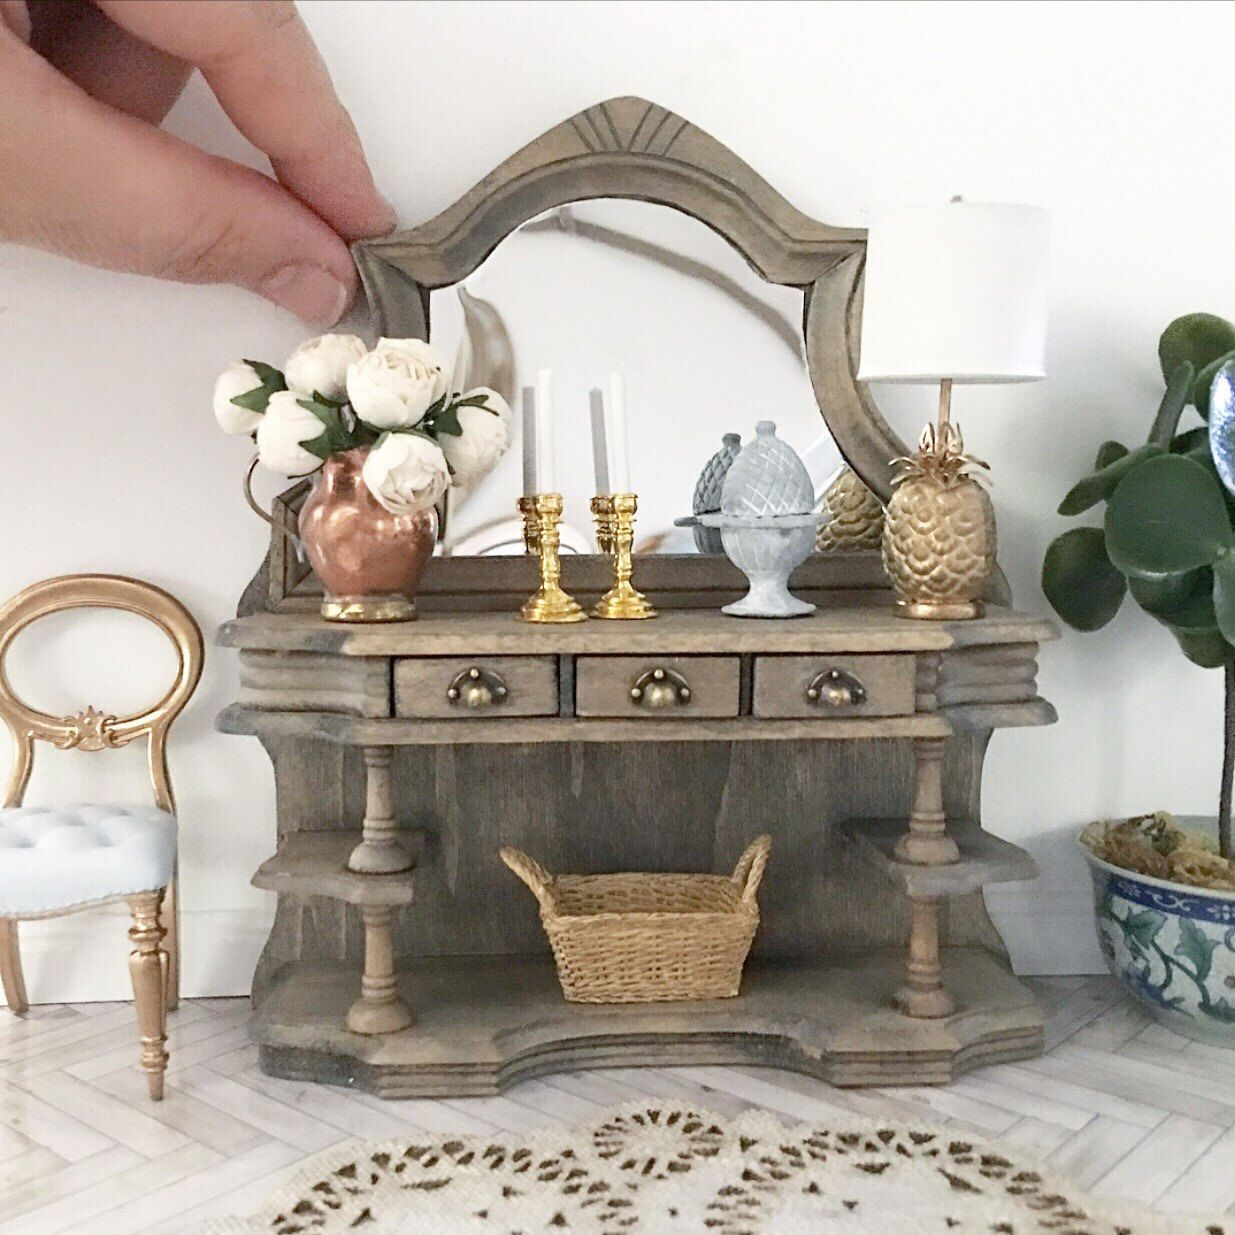 Miniature Rustic French Oak Sideboards With Antique Brass Drawer